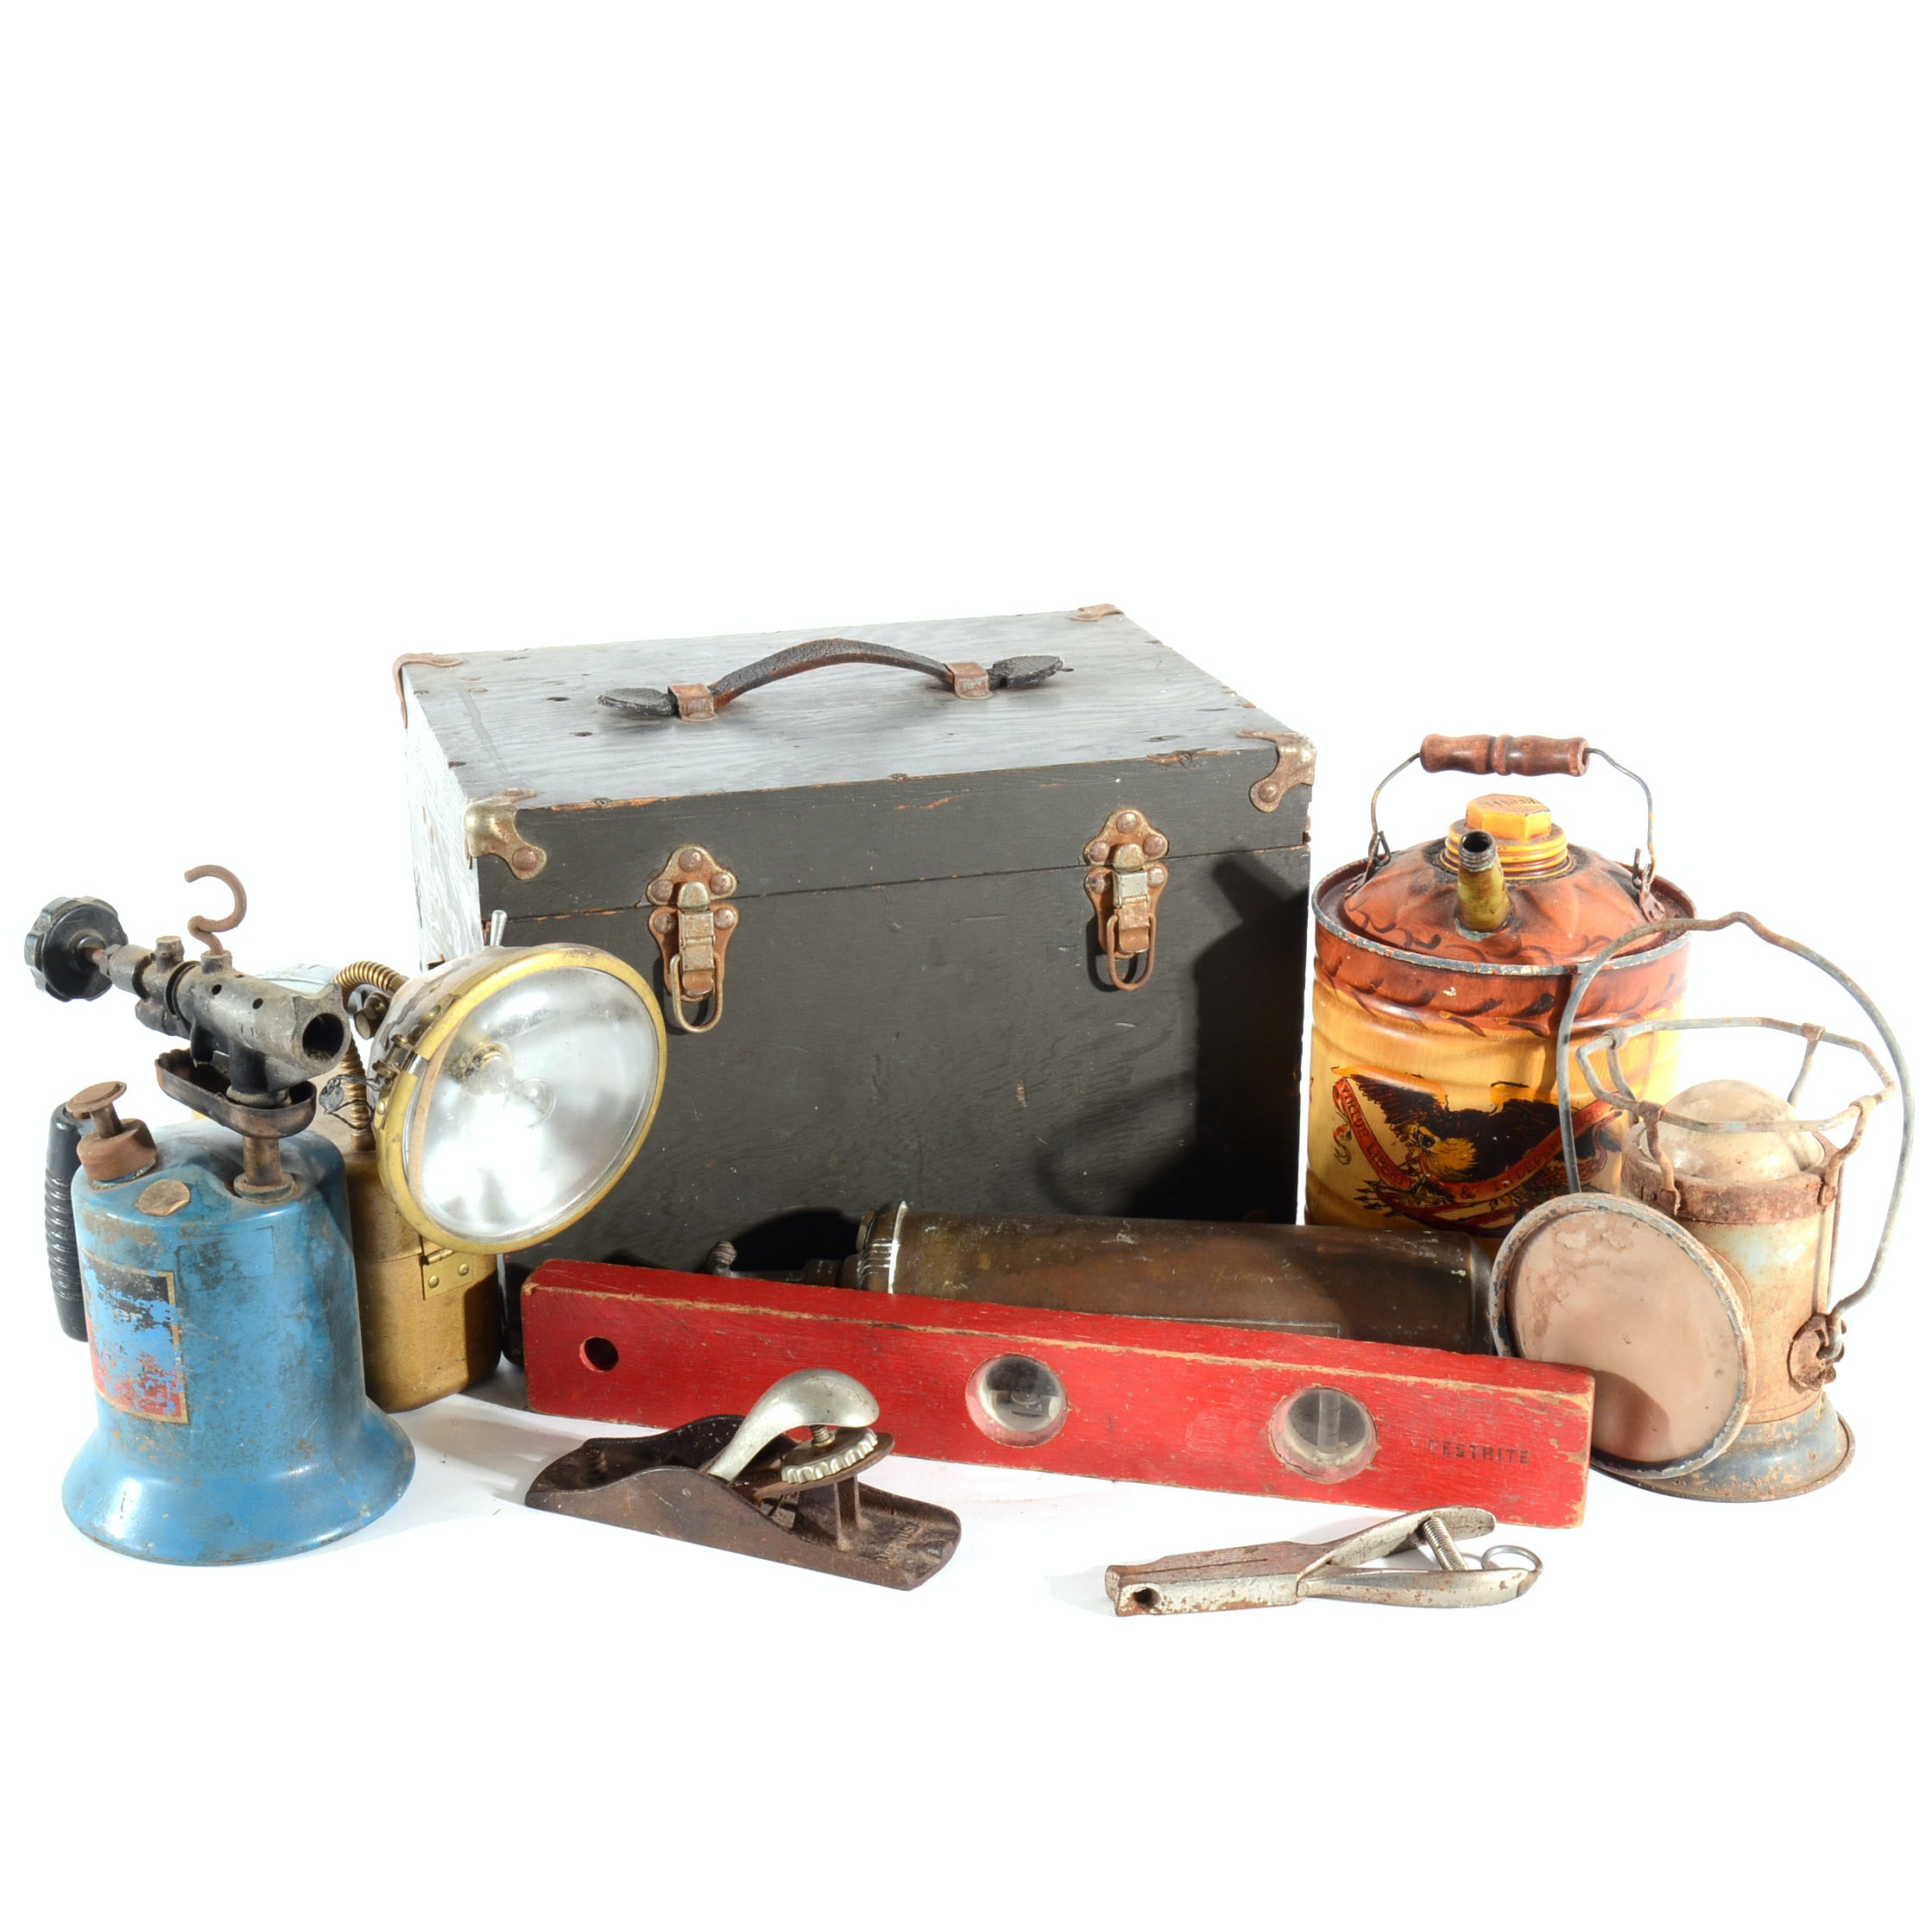 Collection of Vintage and Antique Tools and Household Items